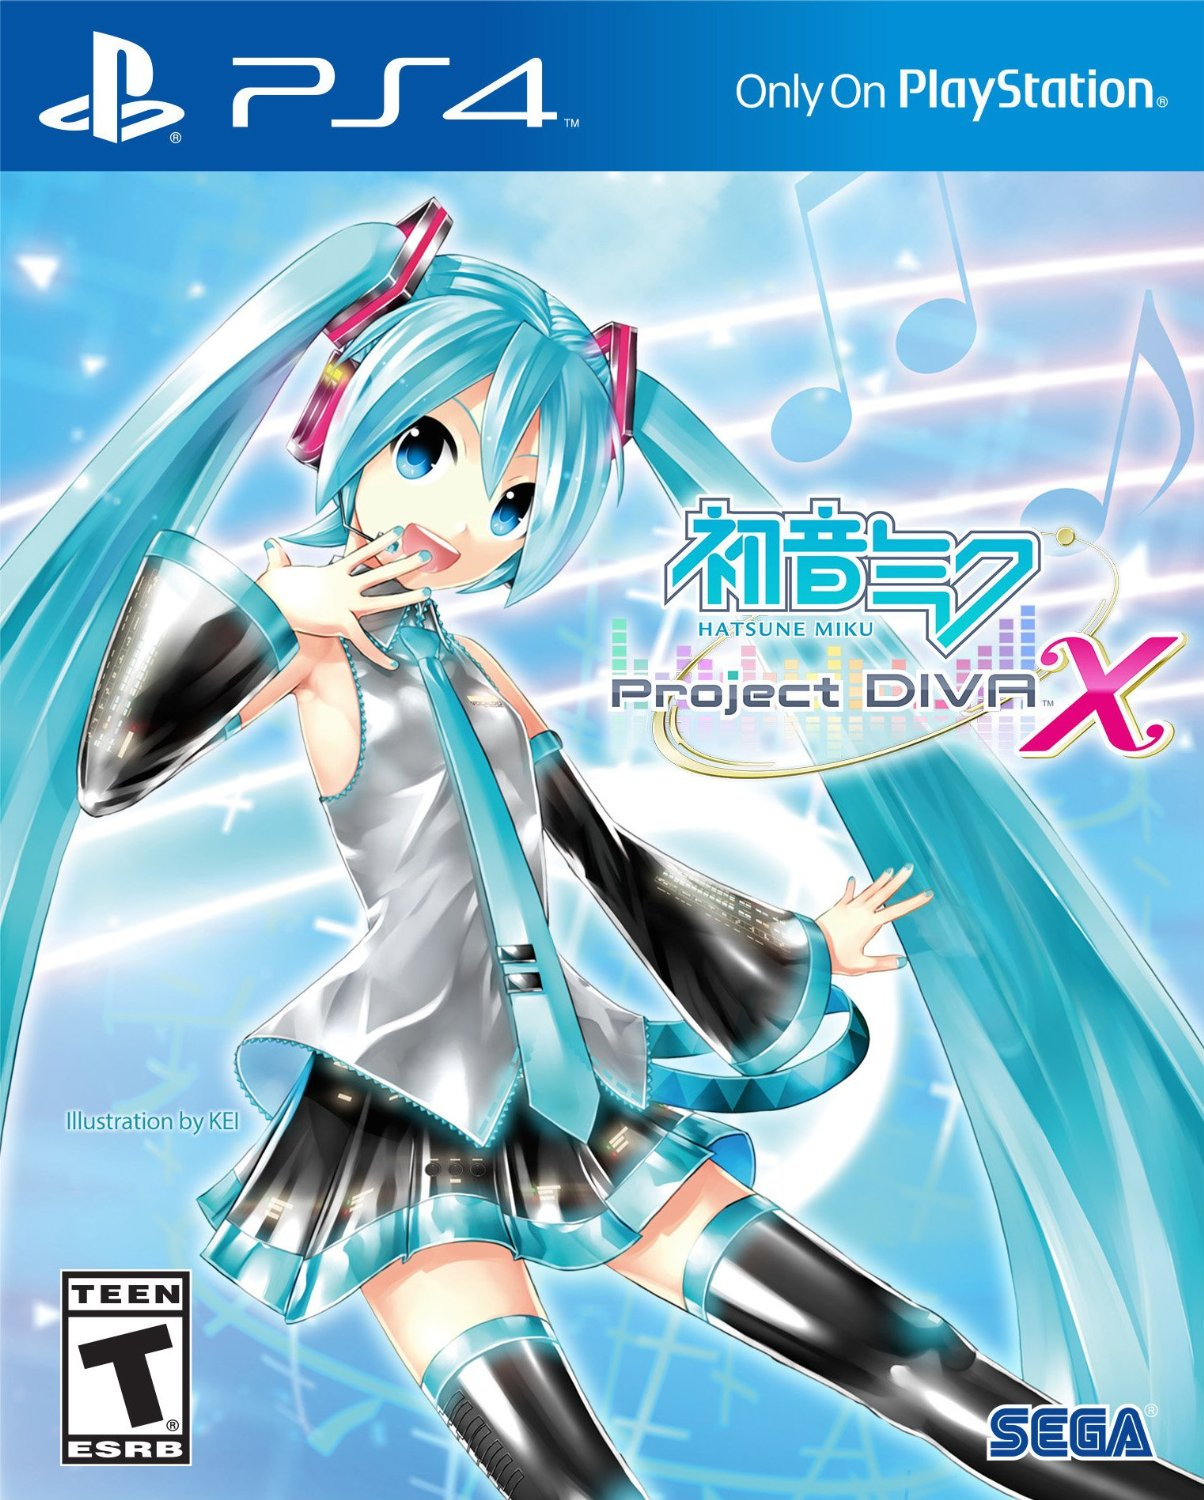 hatsune-miku-project-diva-x-box-art